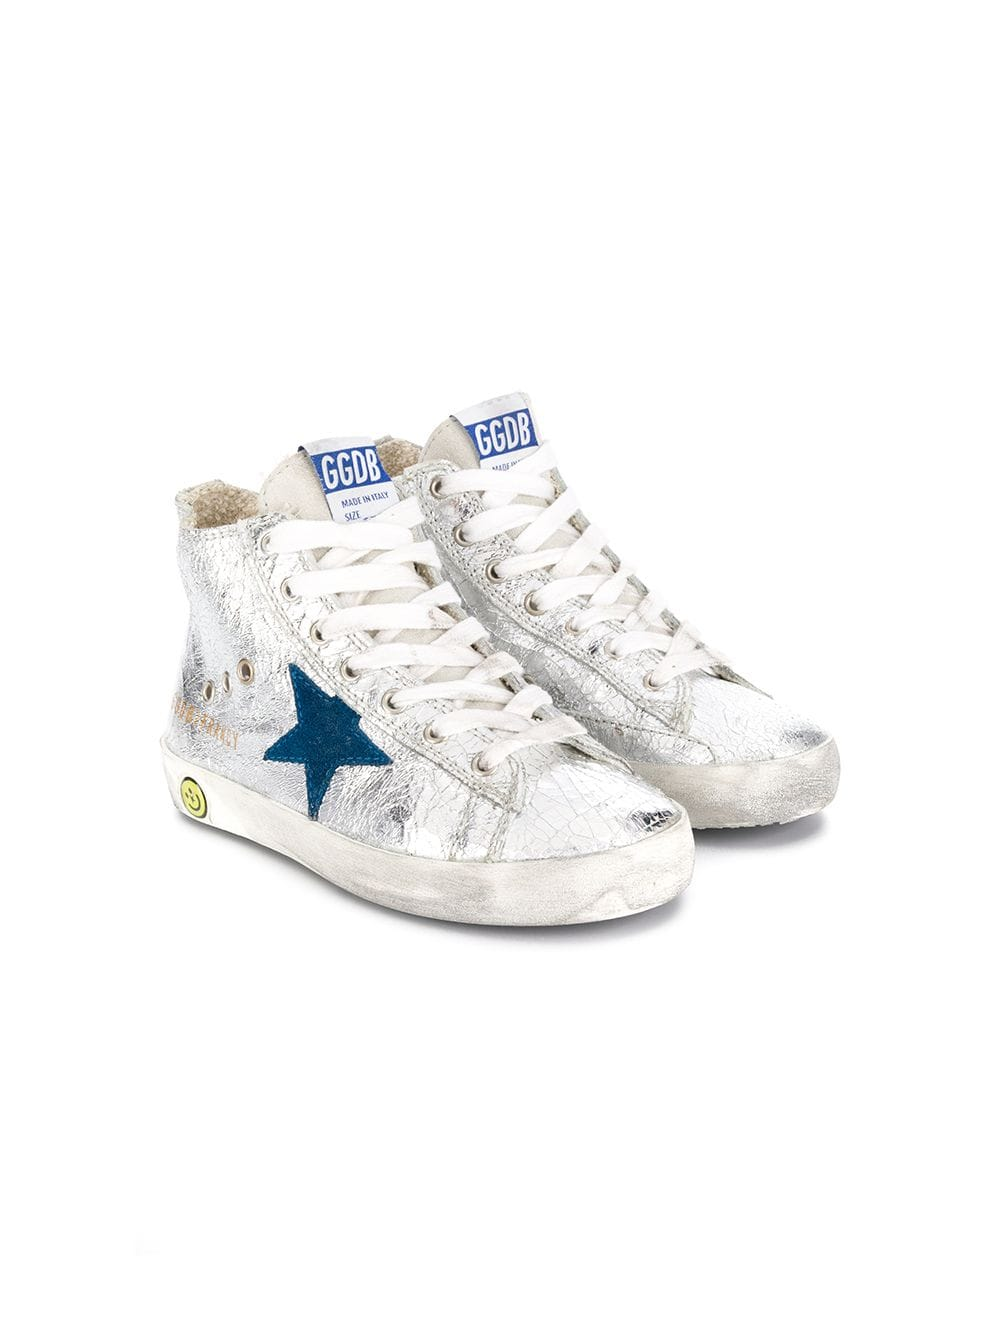 240421d7f Golden Goose Kids Francy sneakers - Silver in 2019   Products ...